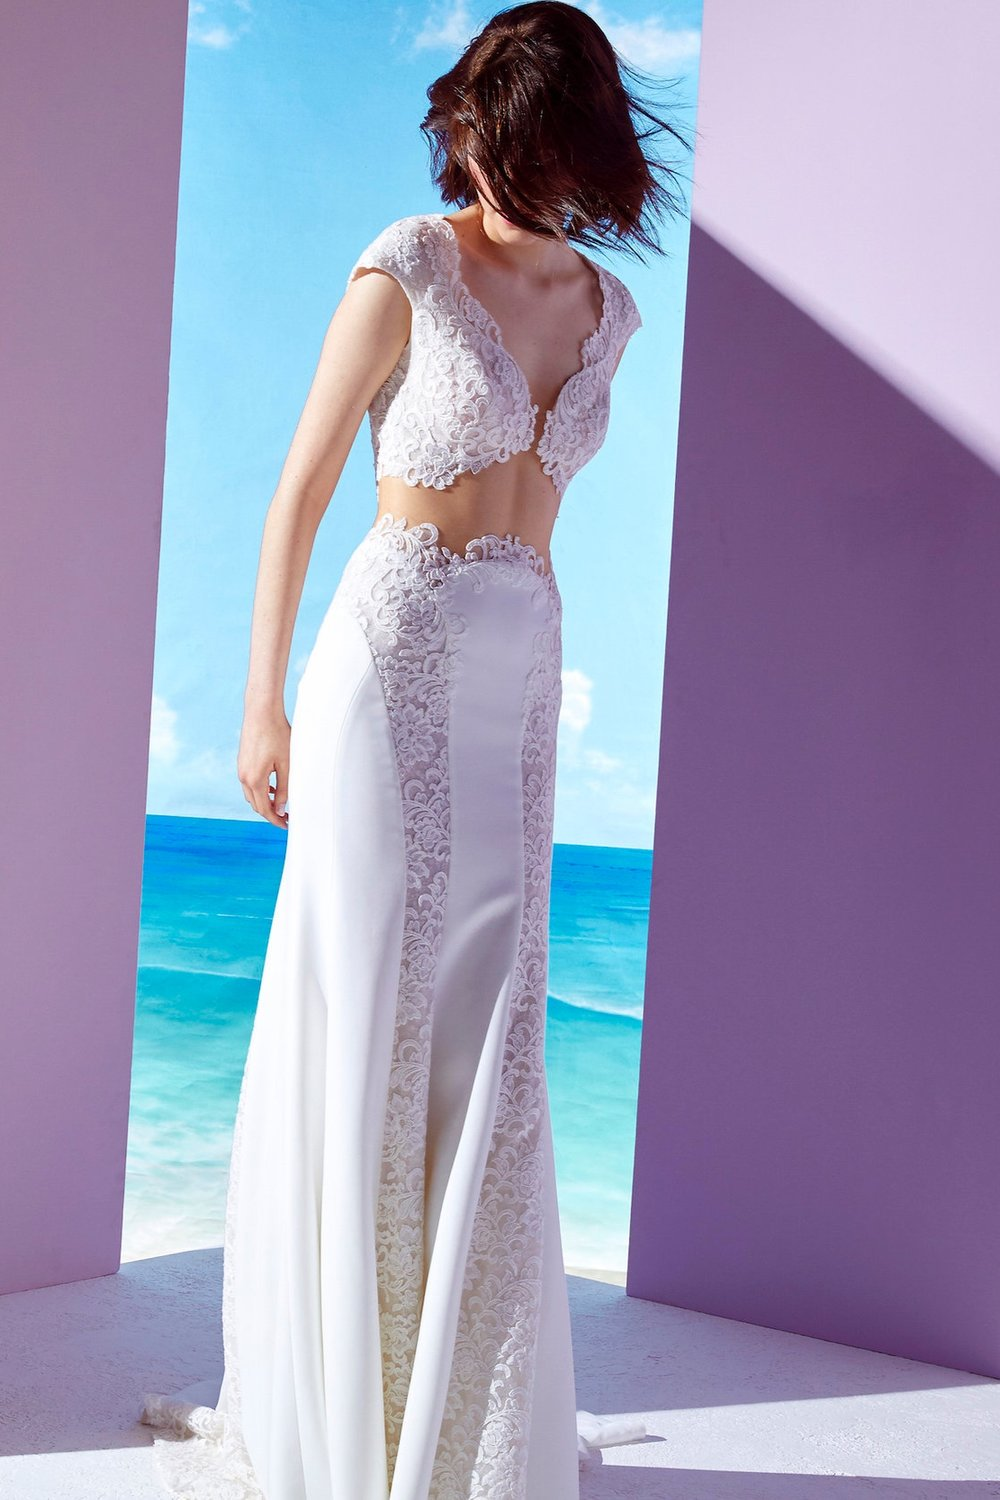 Ines by Ines Di Santo Bridal Spring 2019   TABITHA    INQUIRE